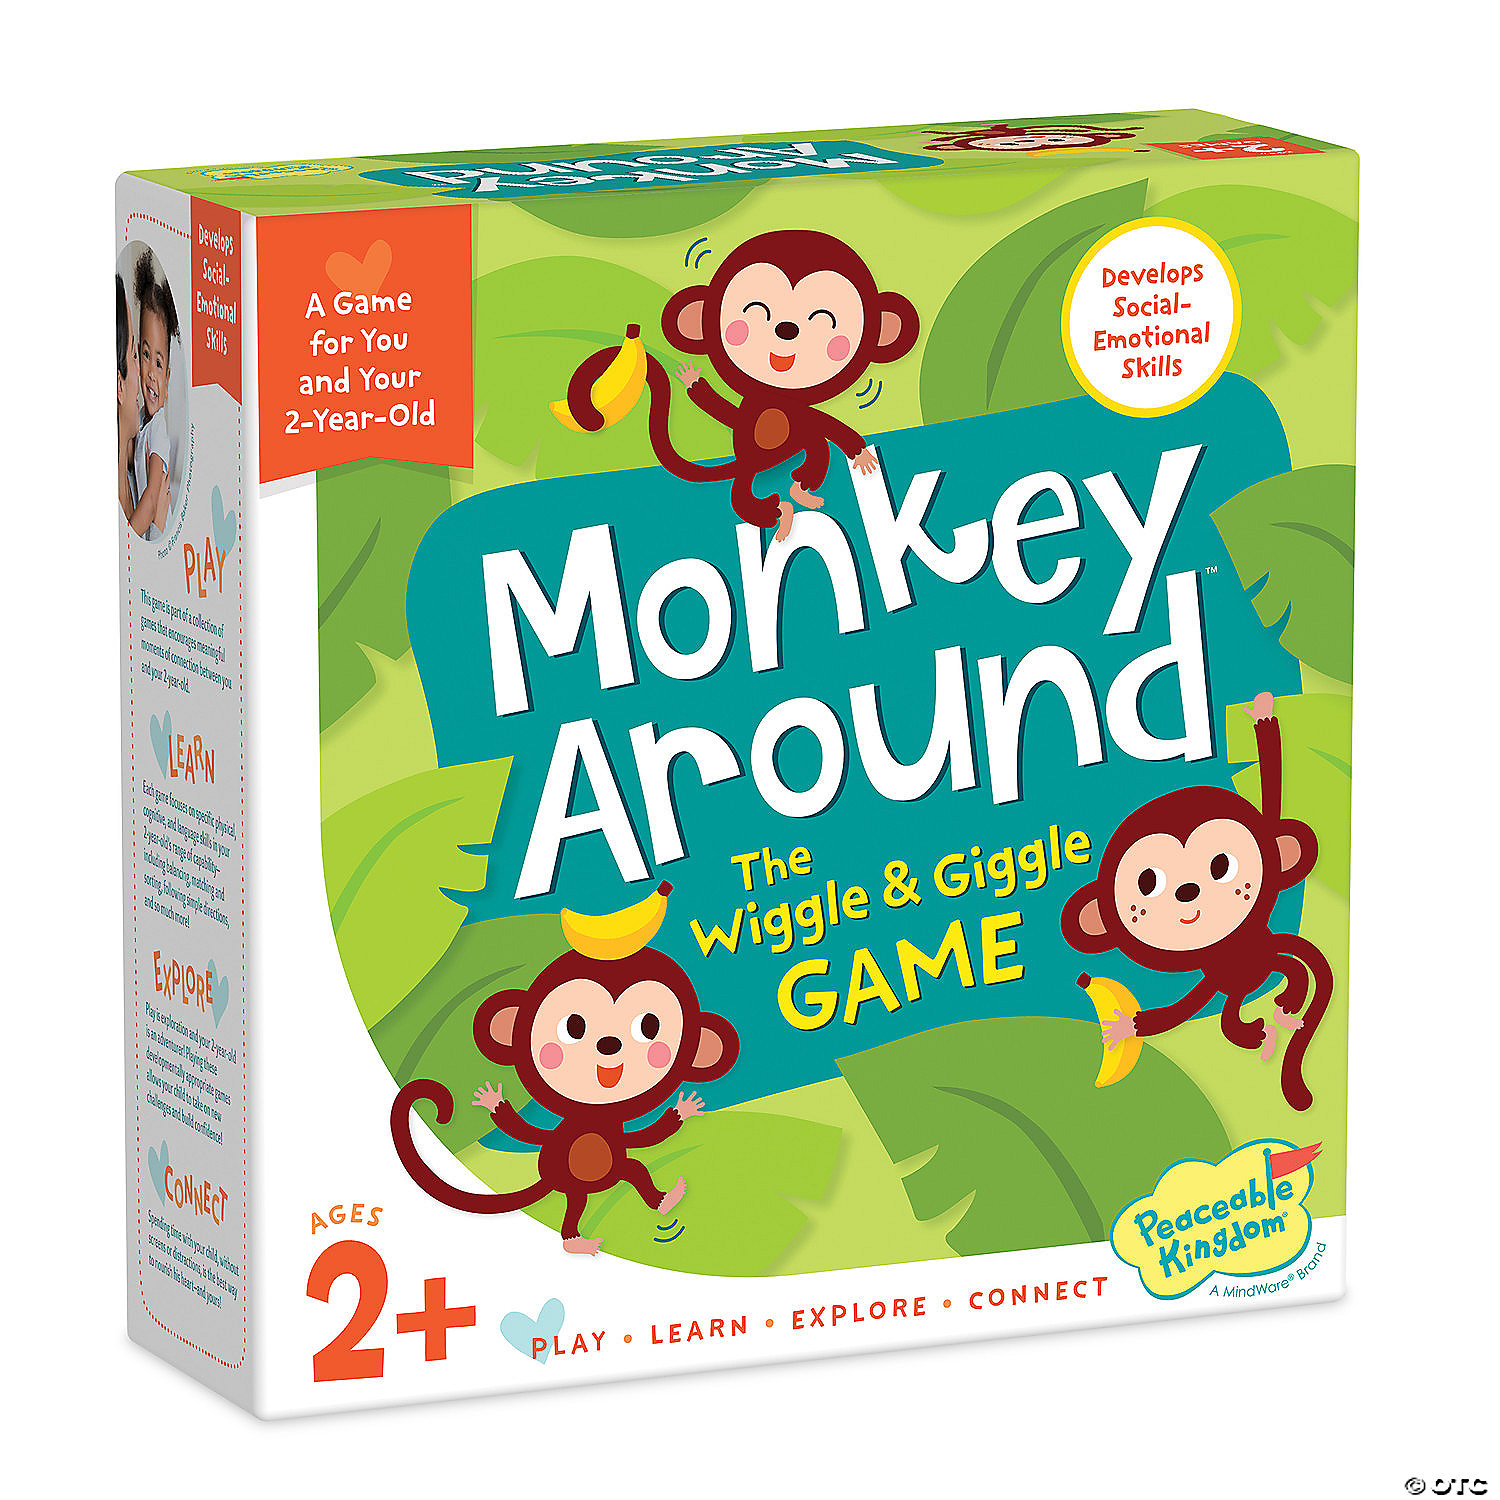 Educational Toys & Learning Games for 3-Year Old Boys & Girls